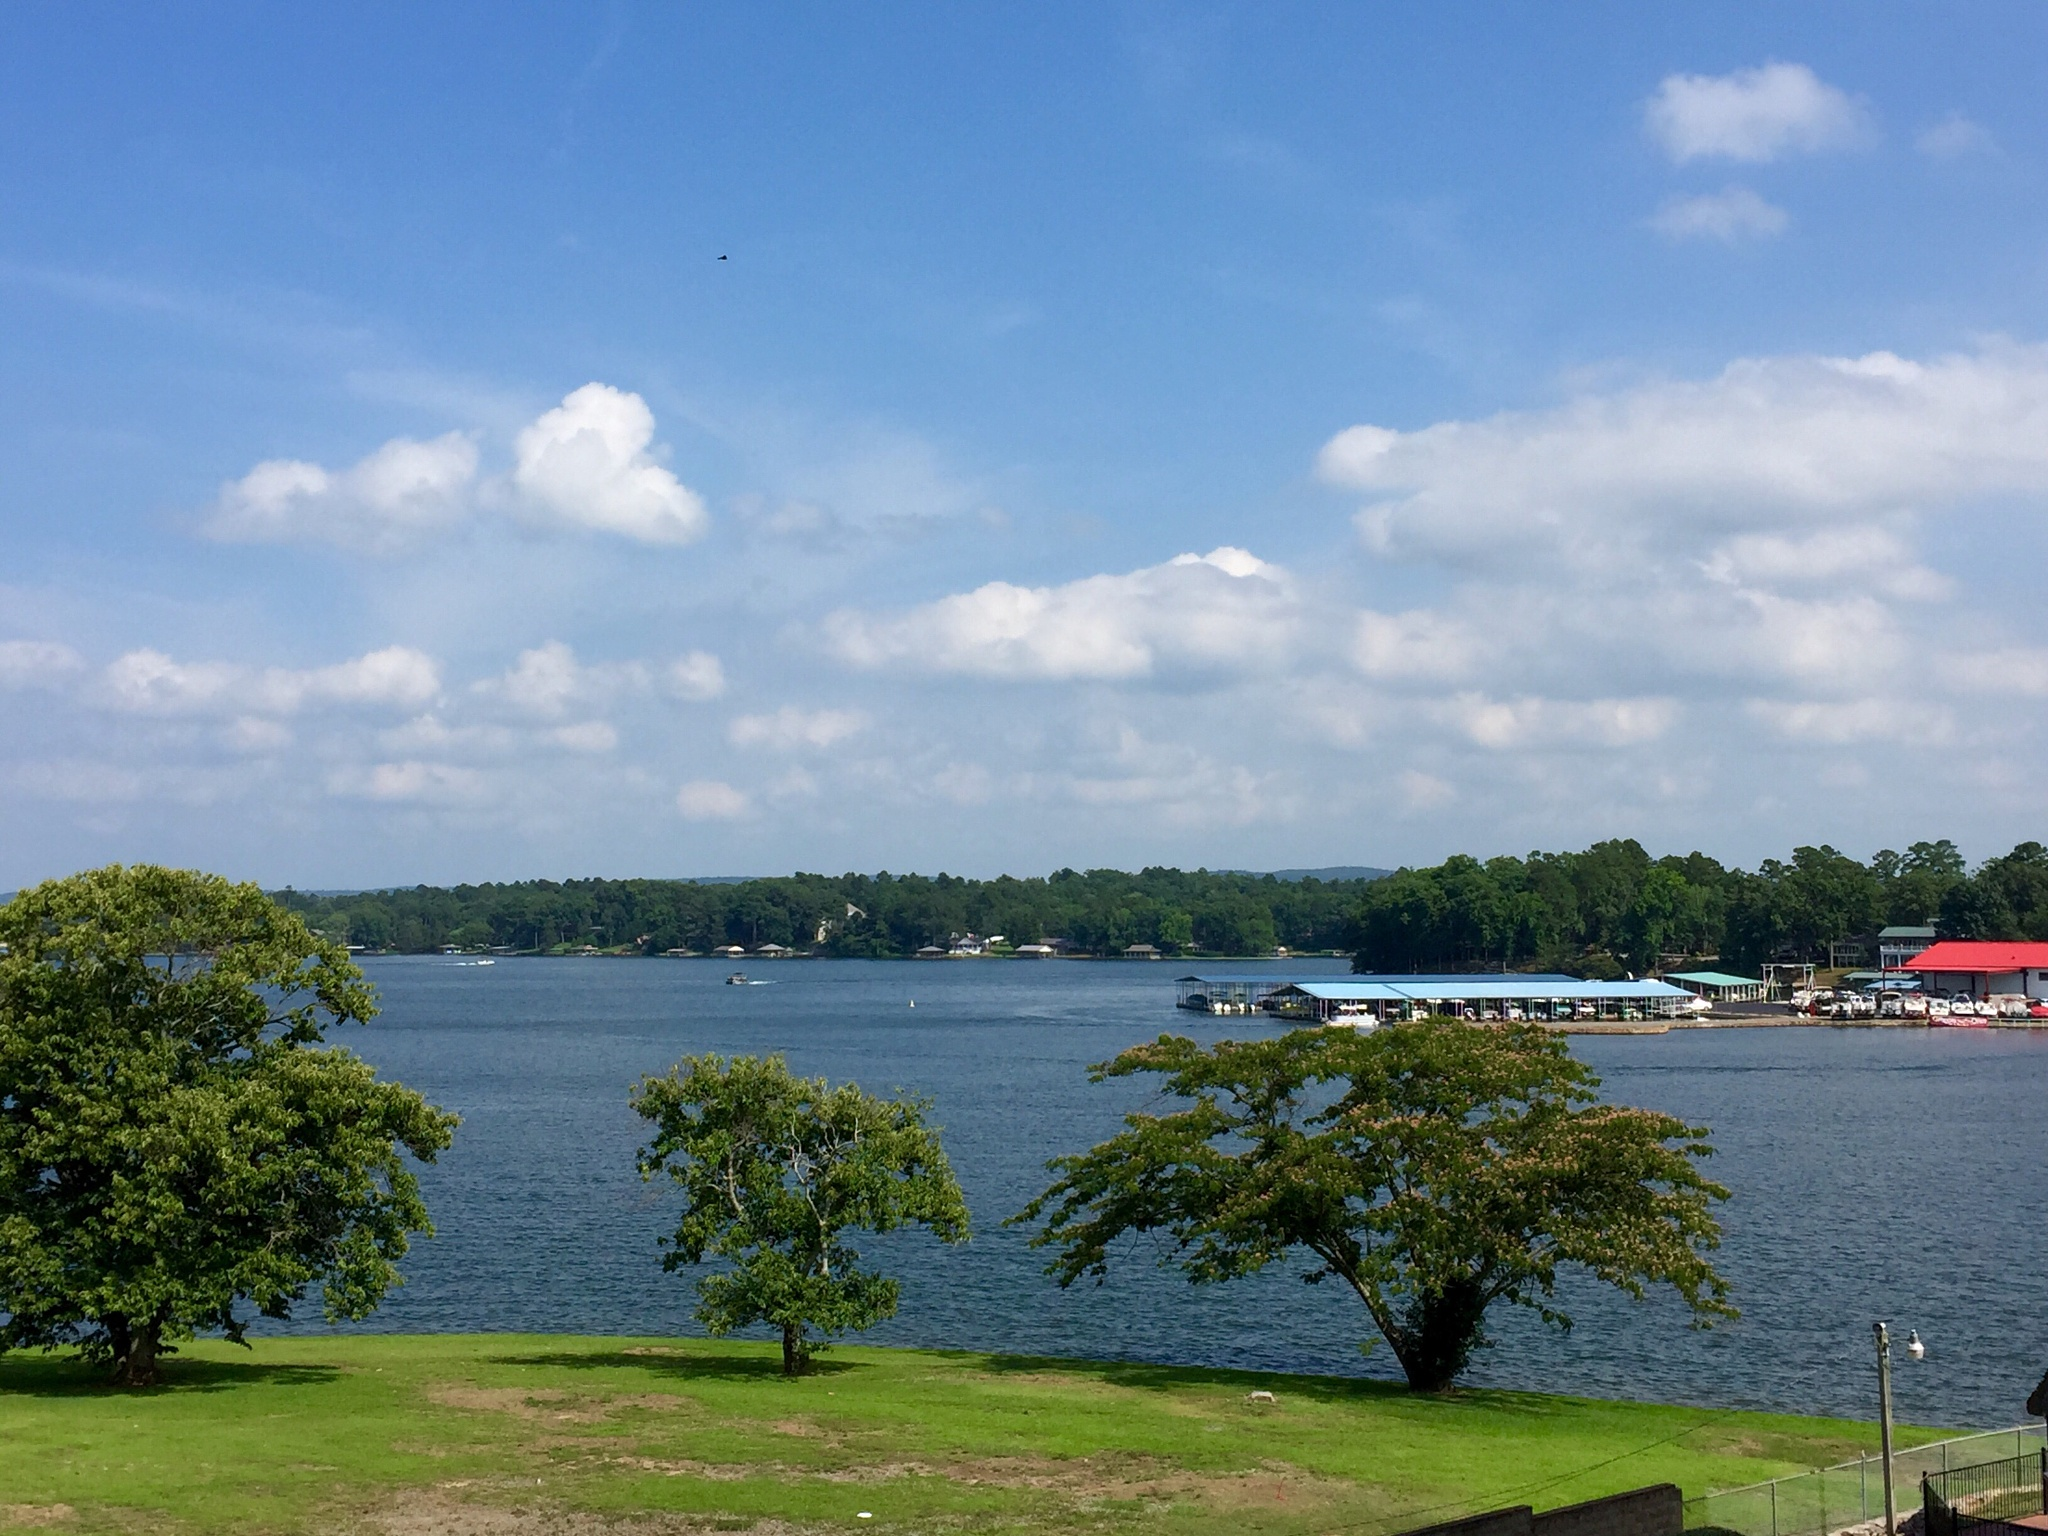 Lake Hamilton in Hot Springs, AR  by marian.states